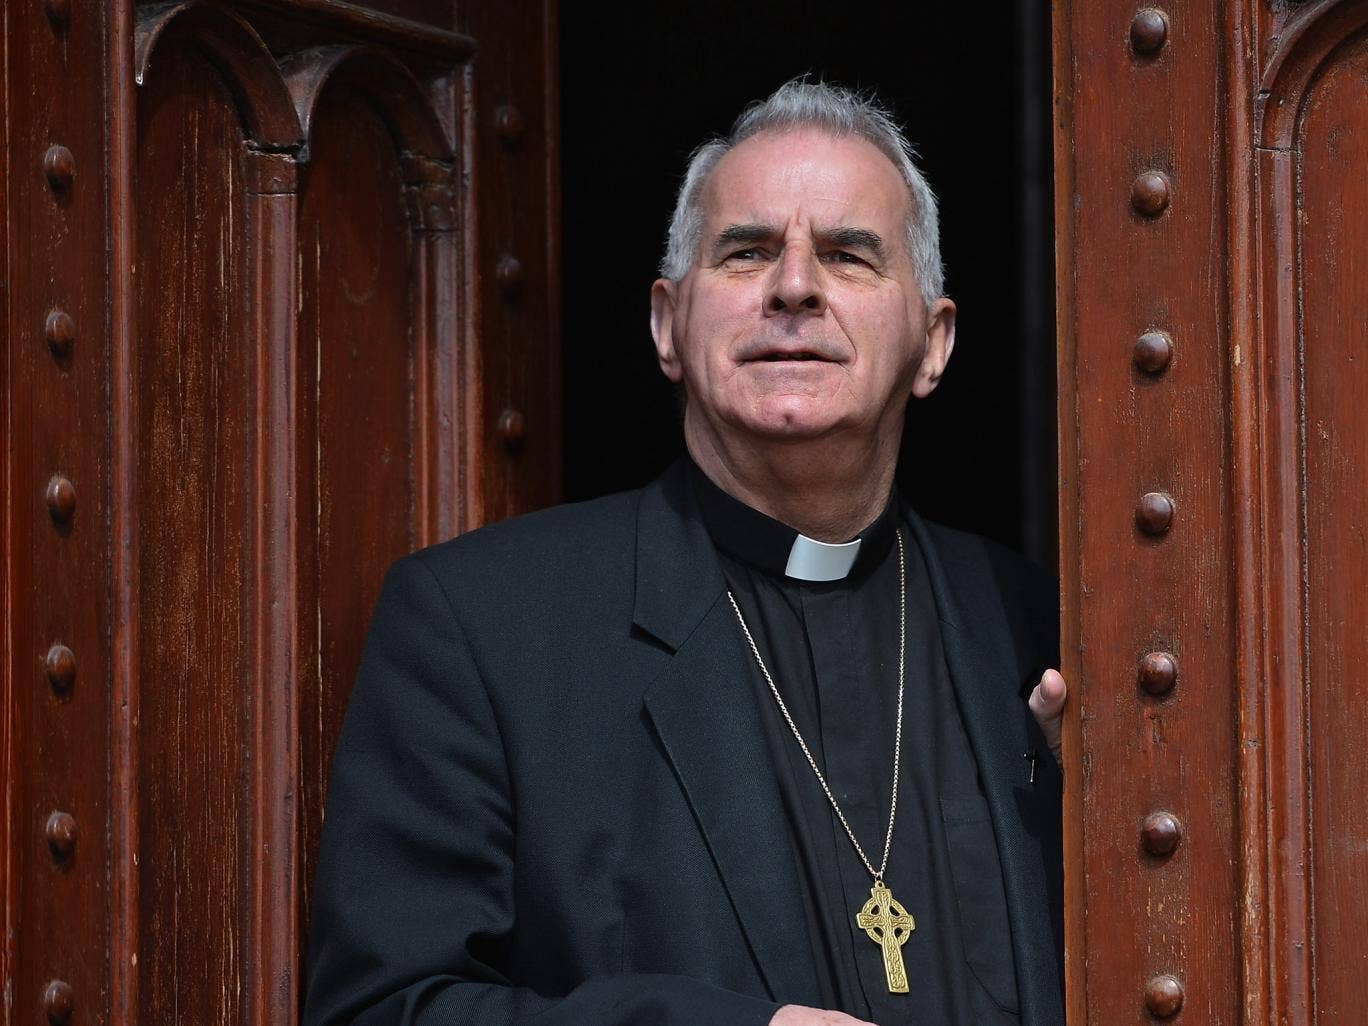 Cardinal Keith O'Brien said the new Pope could consider changing the rules around priestly celibacy